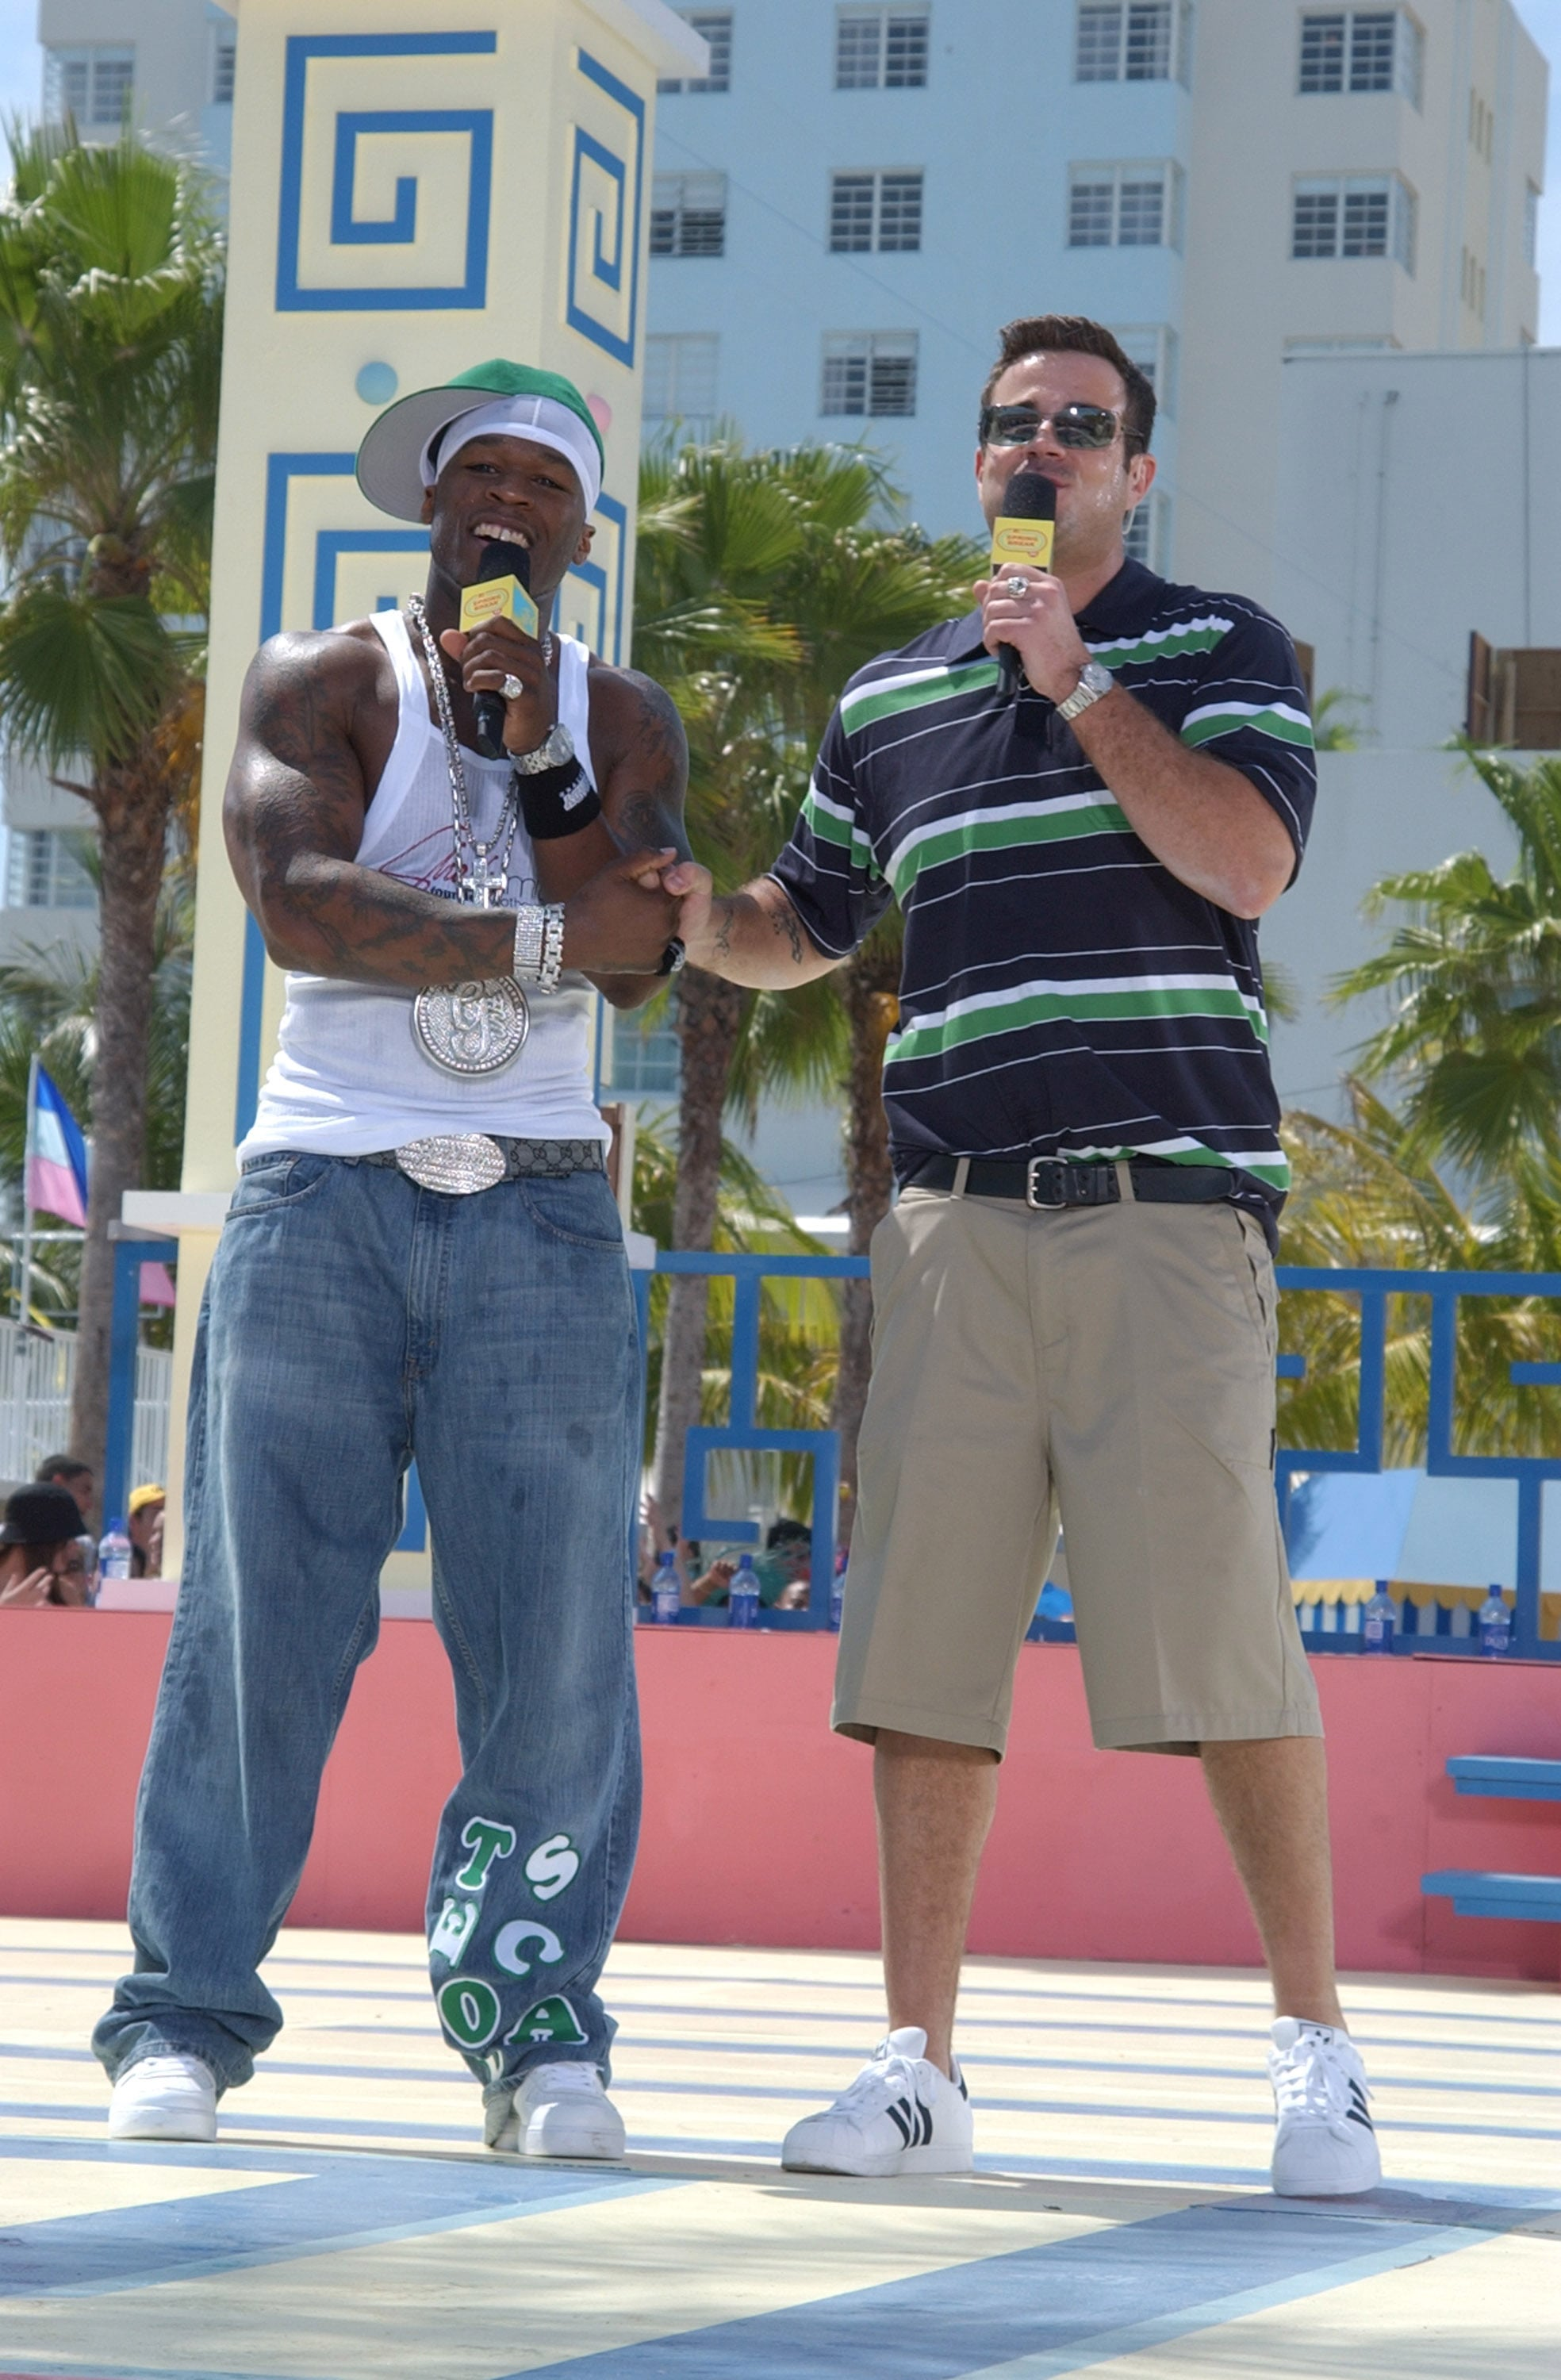 2003: Carson Daly and 50 Cent color coordinate their outfits and share a sweet bro handshake in Miami.